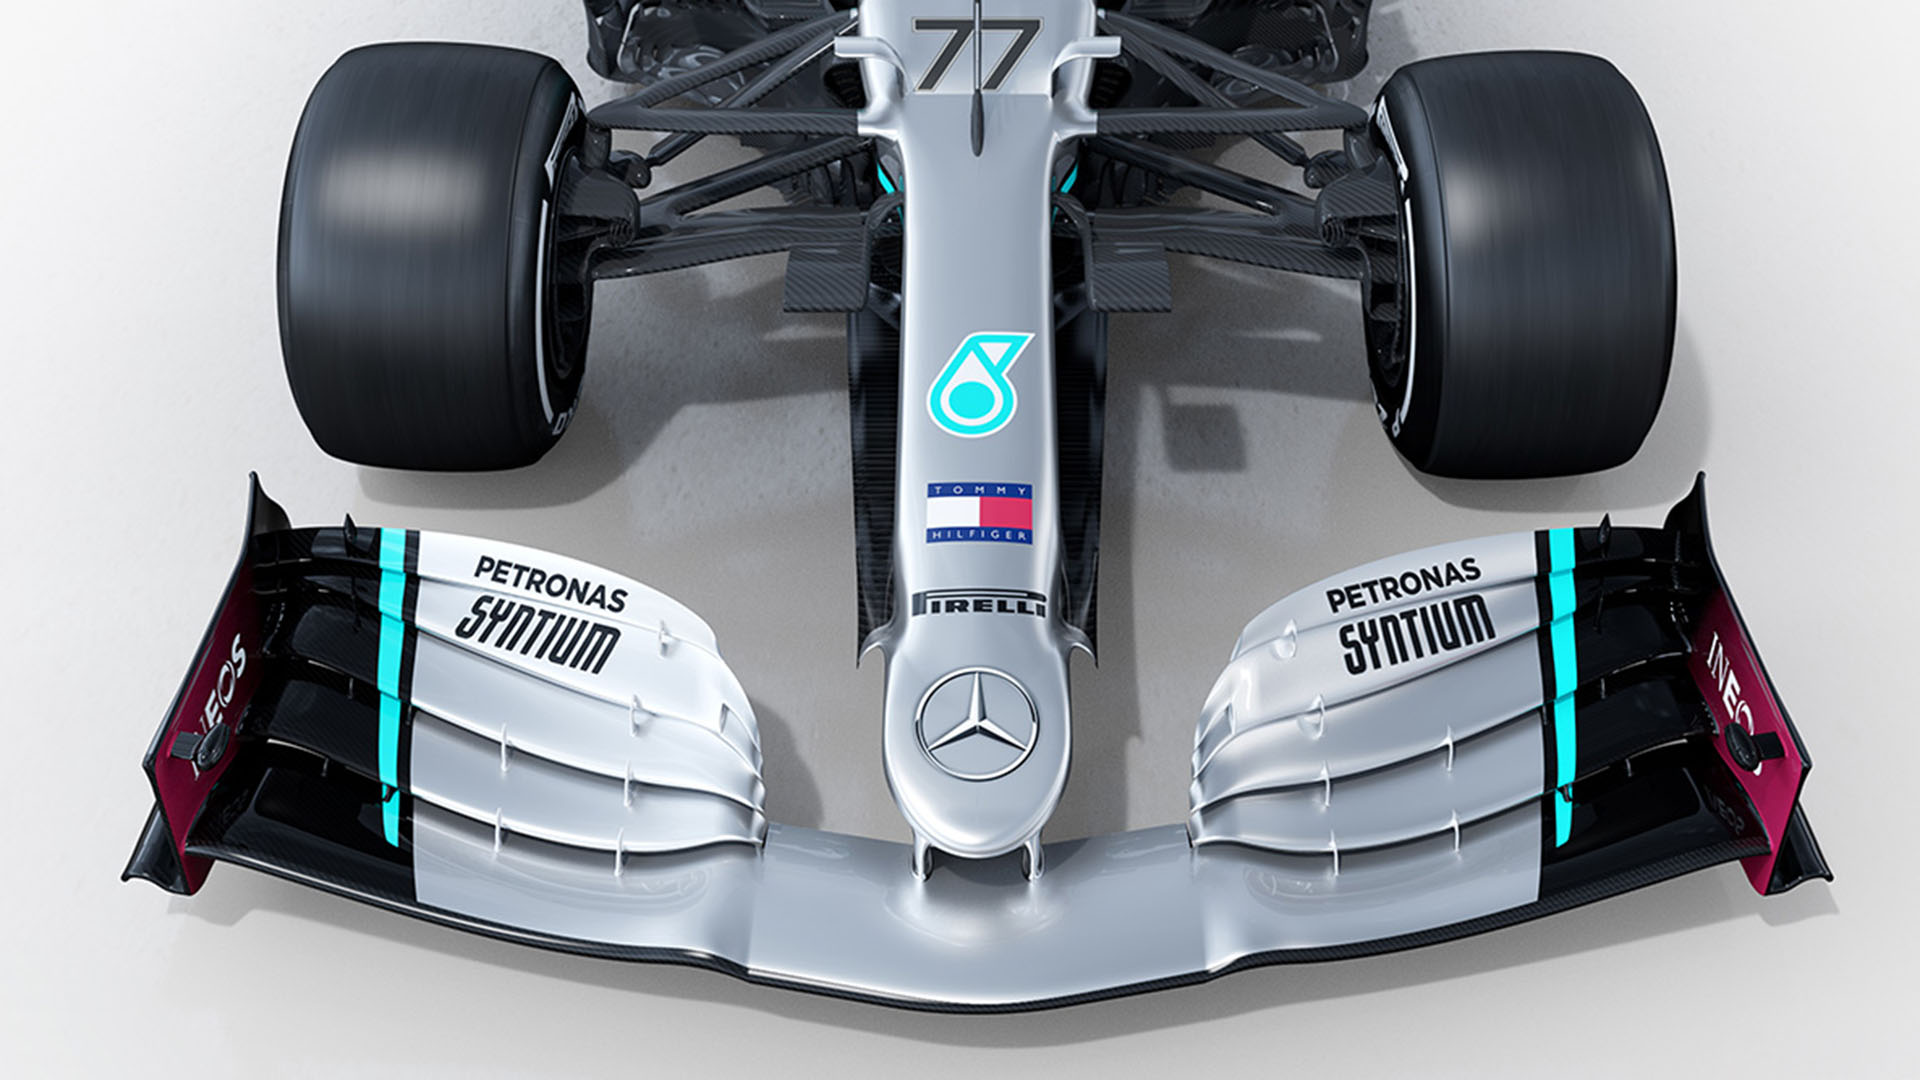 Mercedes 2020 F1 Car Our First Take On Lewis Hamilton S W11